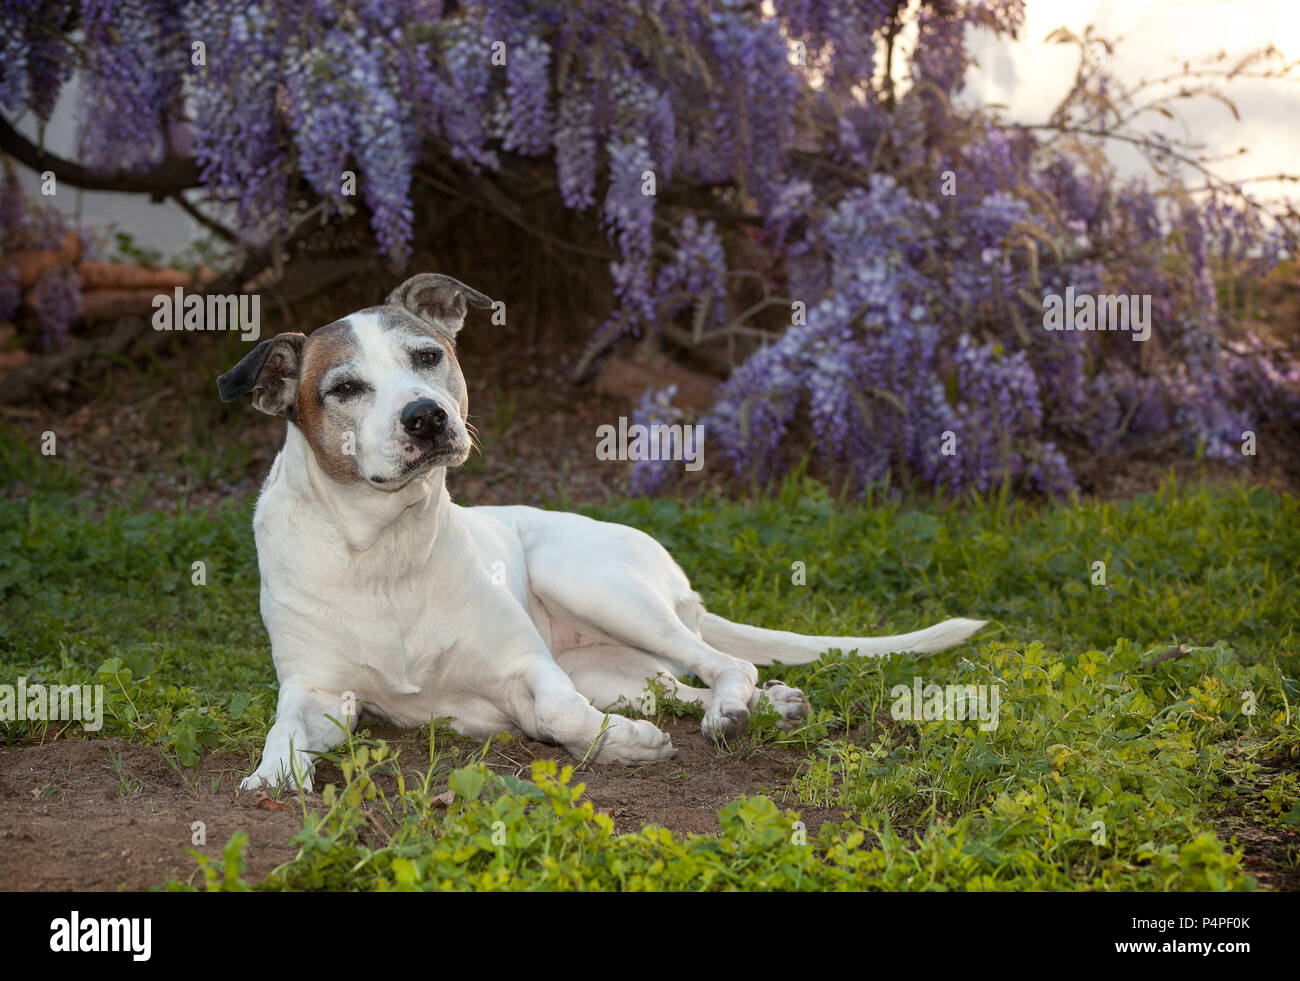 senior white pitbull dog otherwise known as an American Staffordshire Terrier lays on the ground.  She is posing in a very regal way.  There are beaut - Stock Image